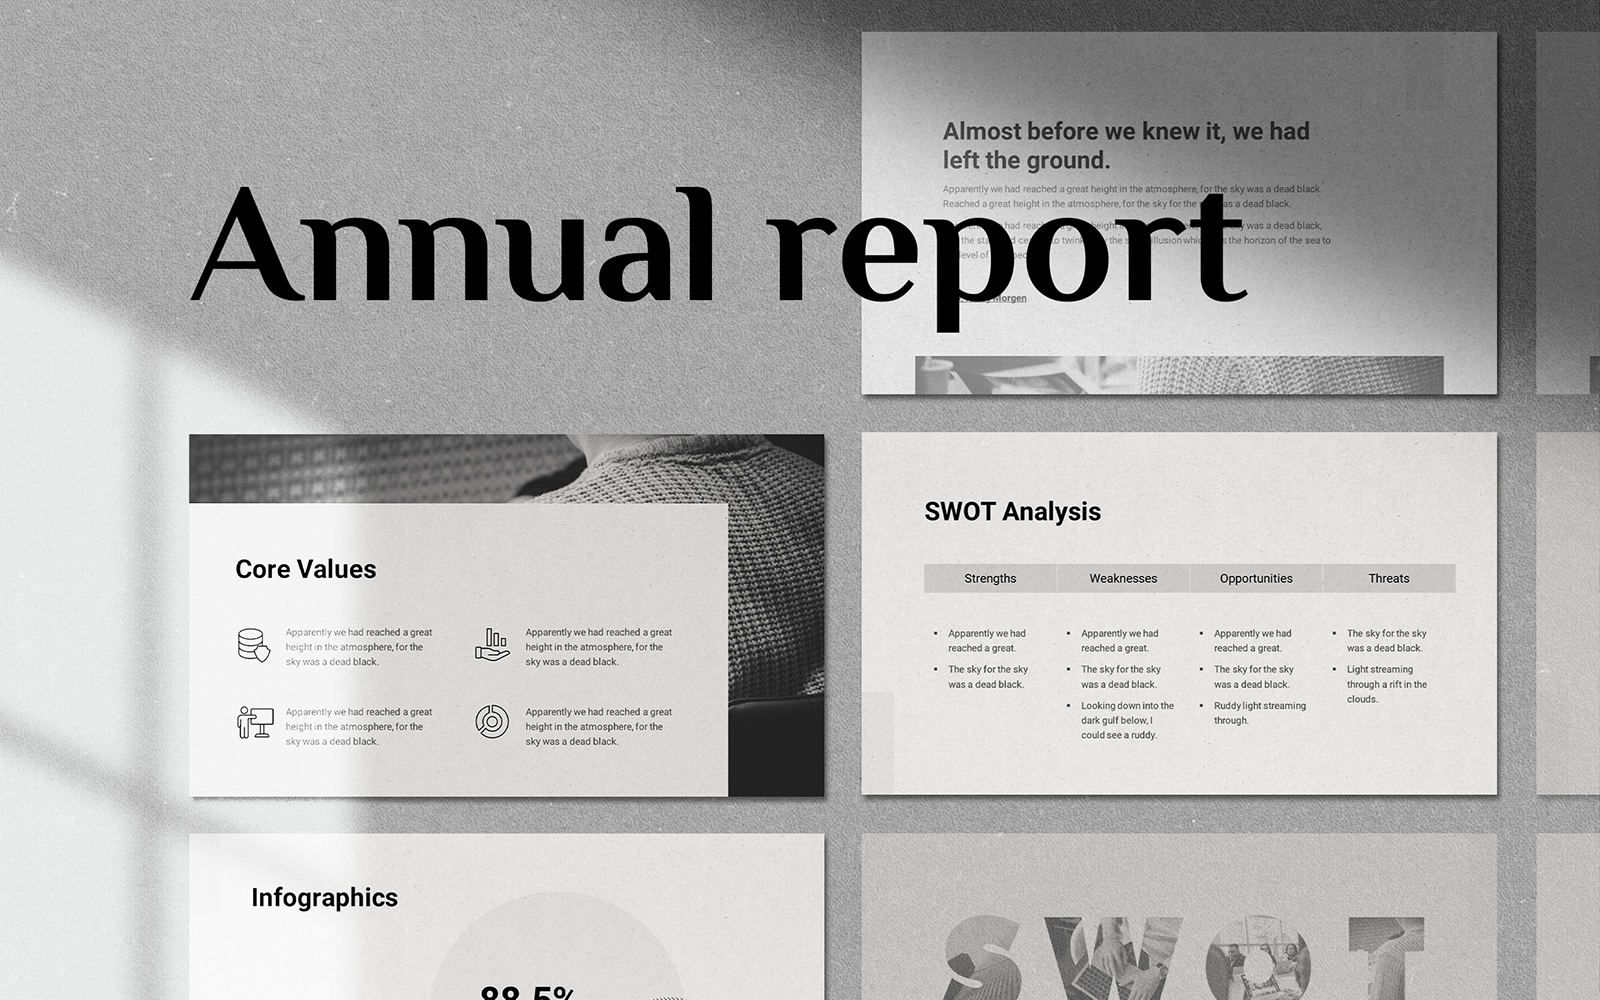 Annual Report - Smooth Animated Template Google Slides #144766